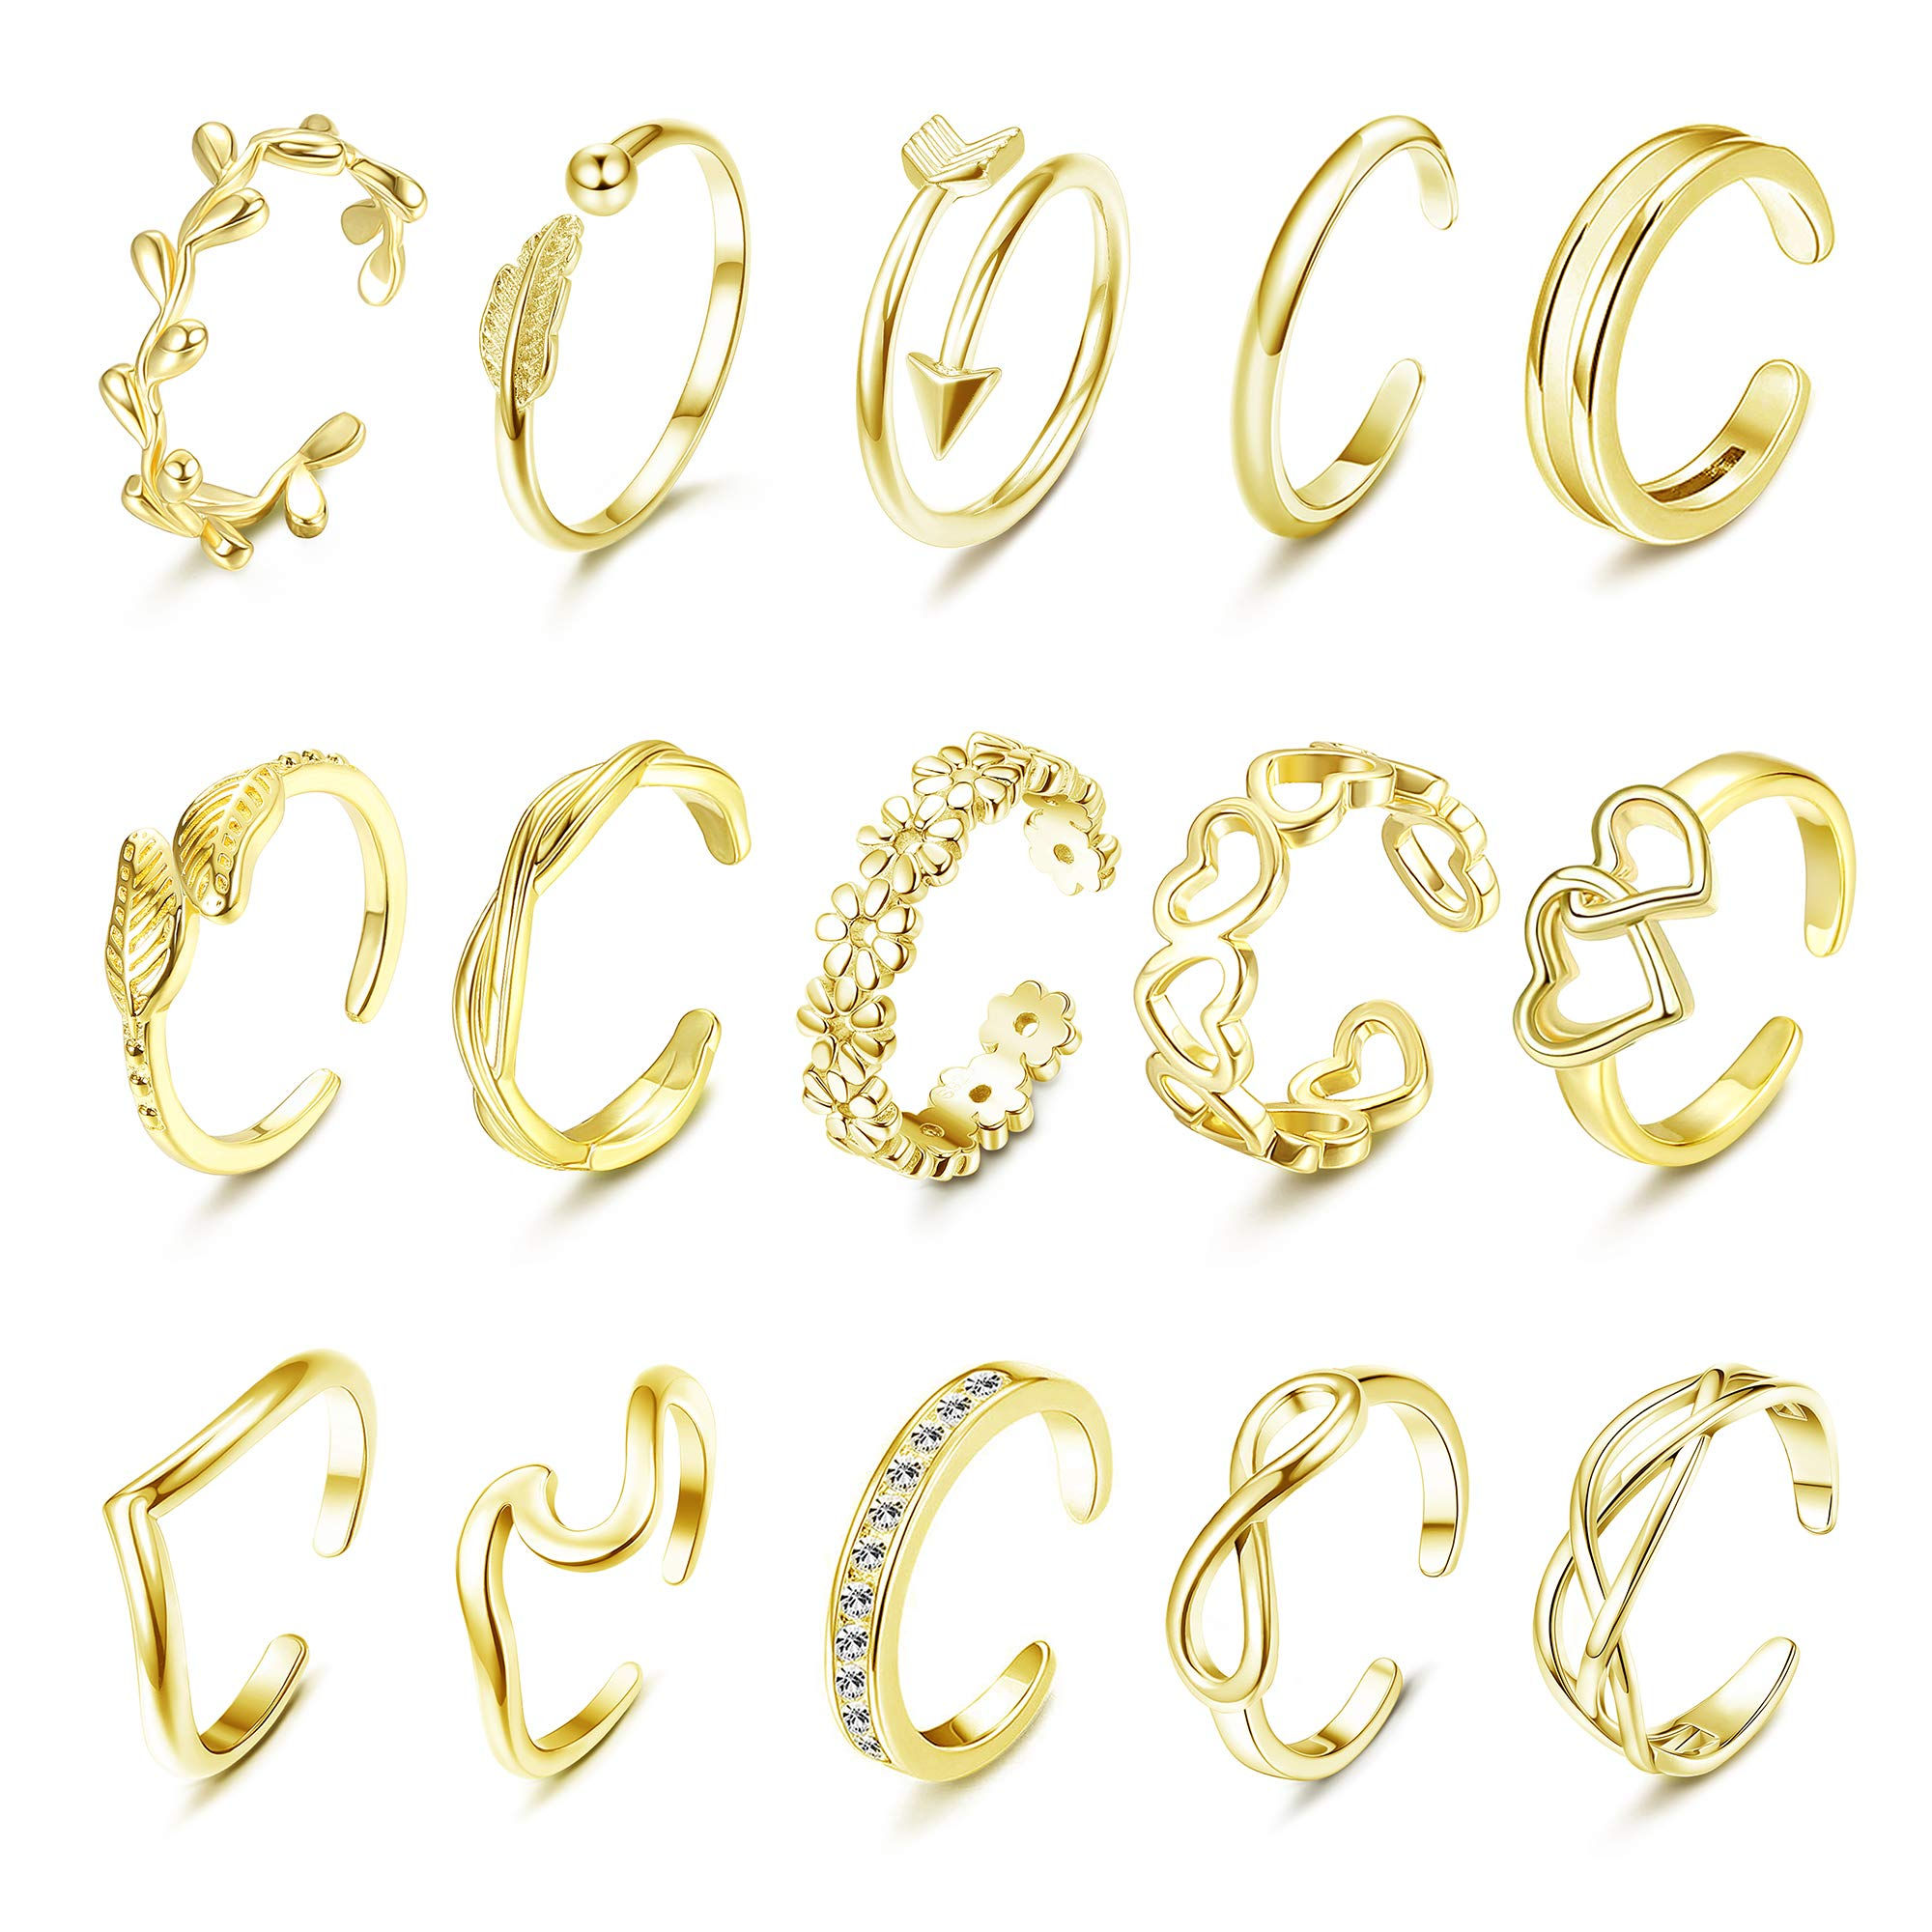 sailimue 15 Pcs Adjustable Toe Rings for Women Flower Heart Arrow Wave Toe Ring Silver Gold Rose Gold Open Toe Ring Set Silver Gold Rose Gold Women Beach Foot Jewelry